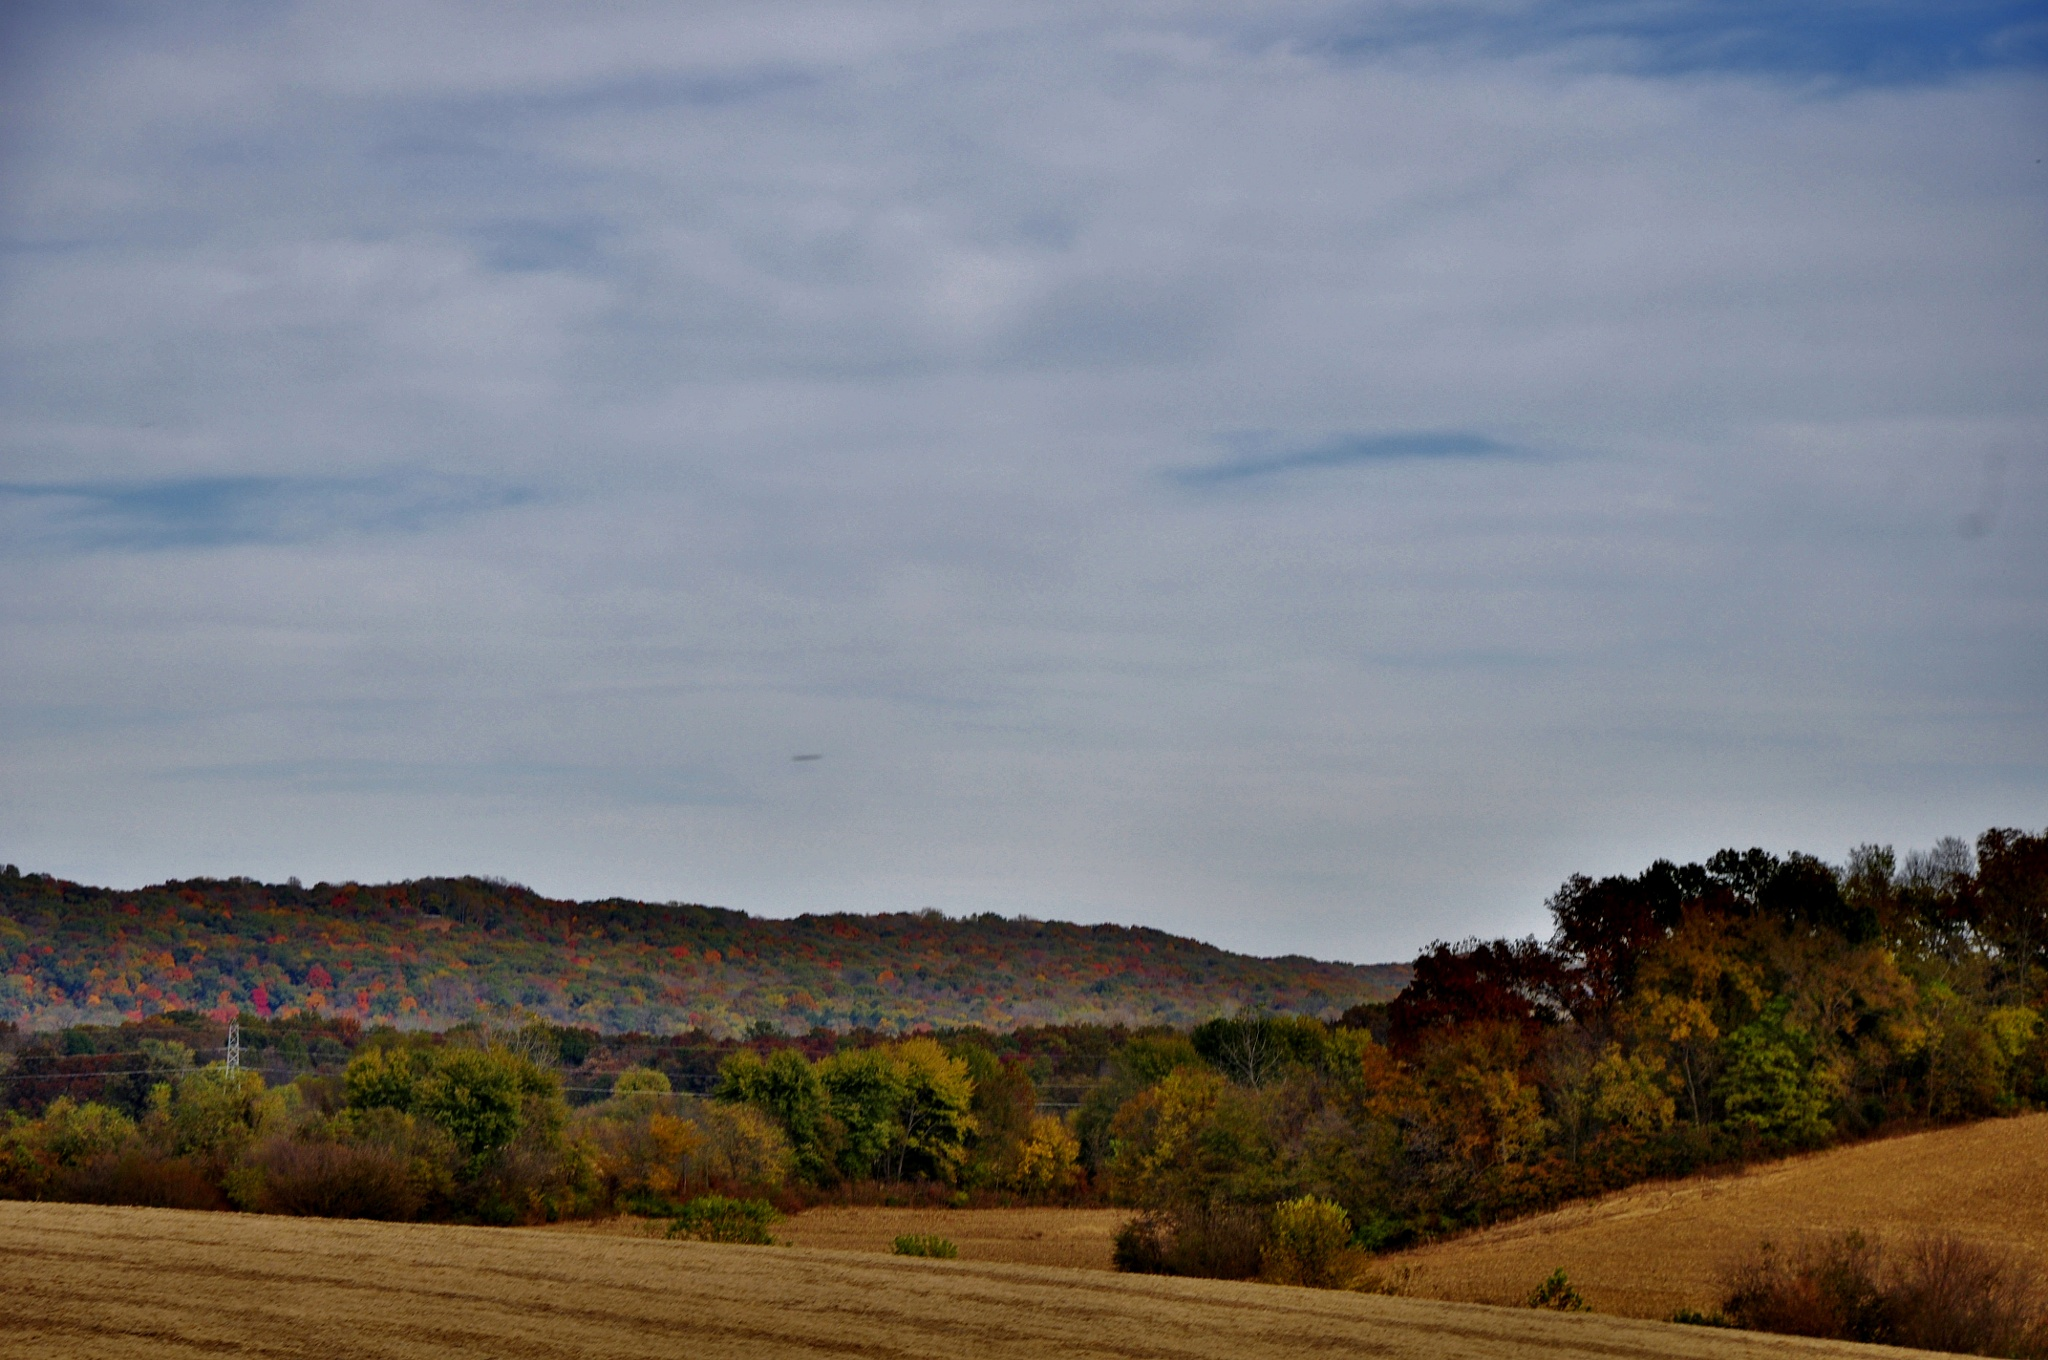 Fields surrounded by bluffs by debbylesko